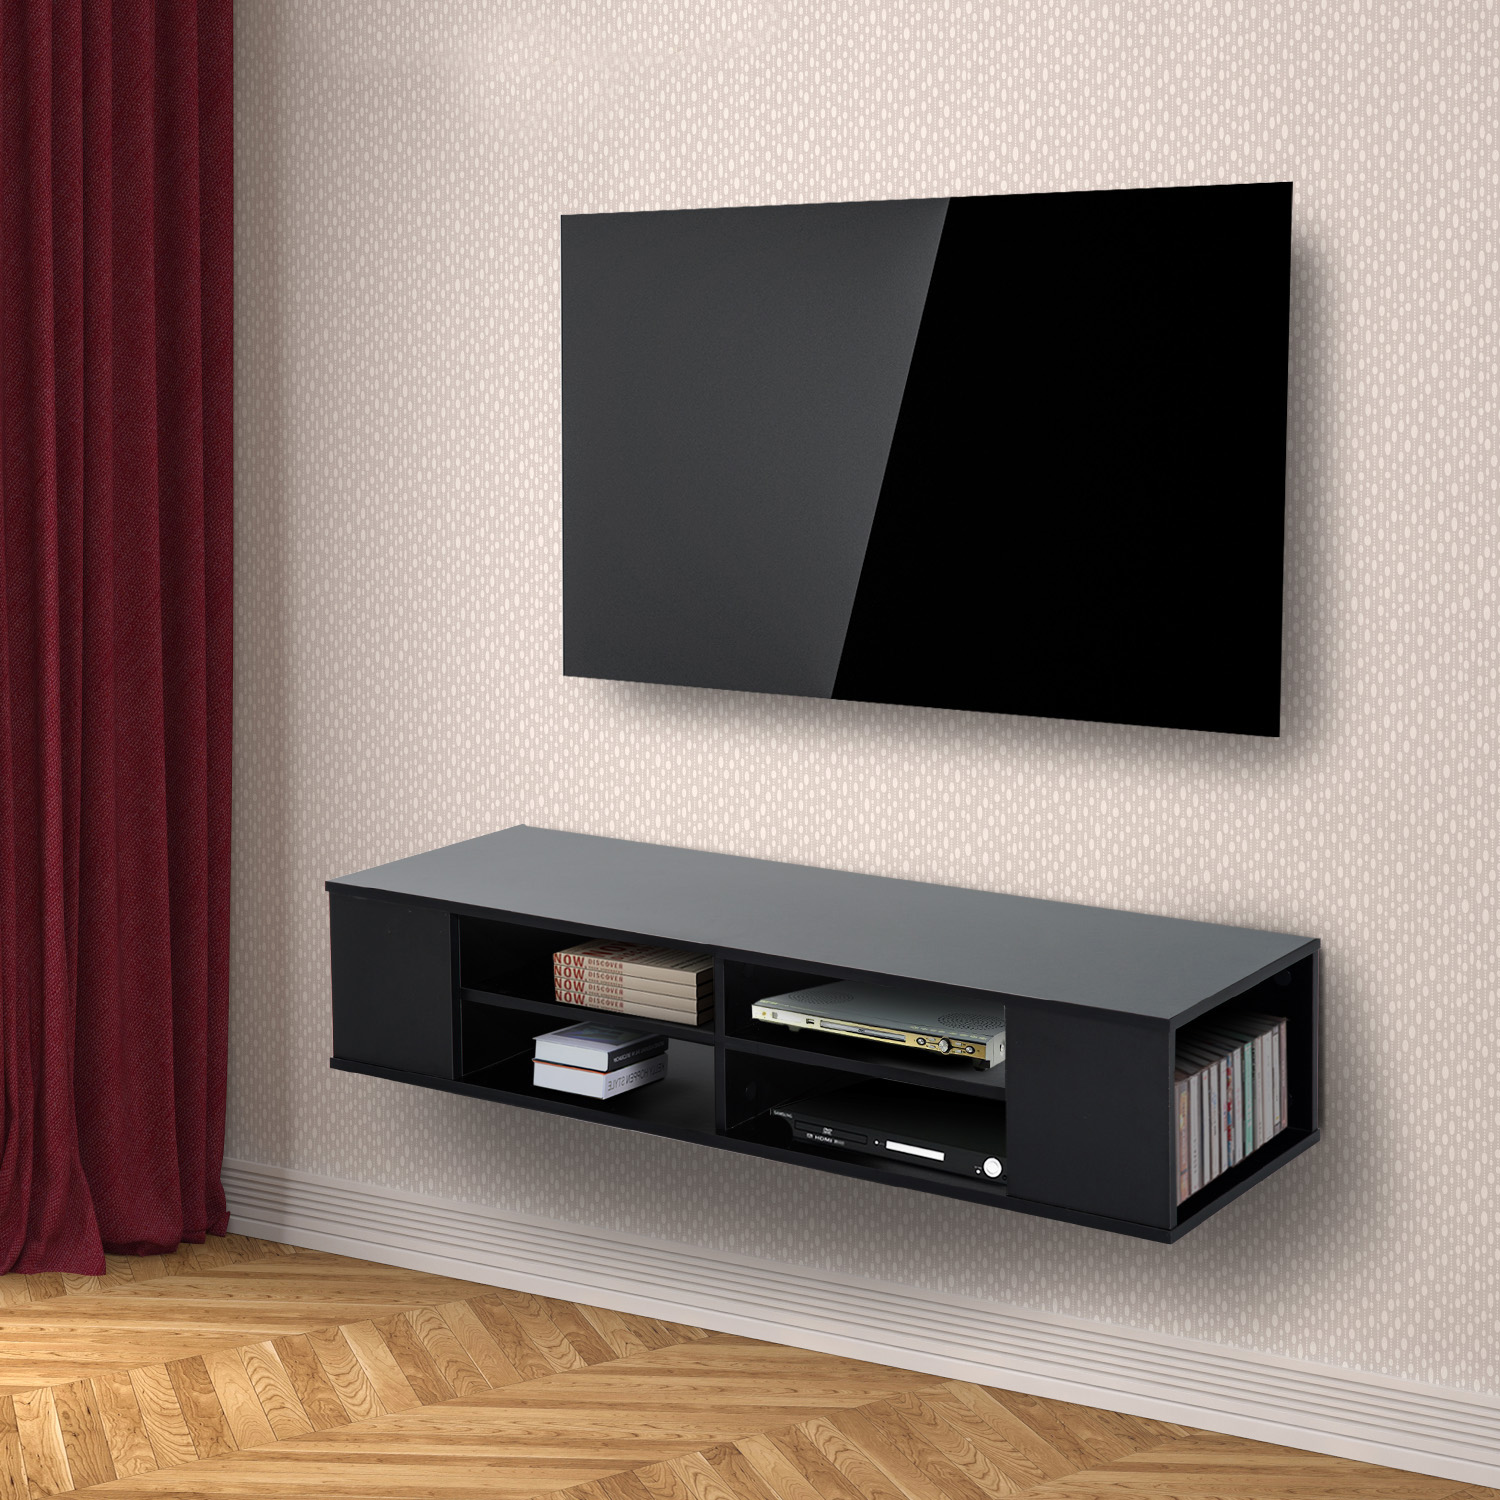 Floating Tv Unit Wall Mounted Modern 47 Floating Wall Mounted Tv Stand Unit Cabinet